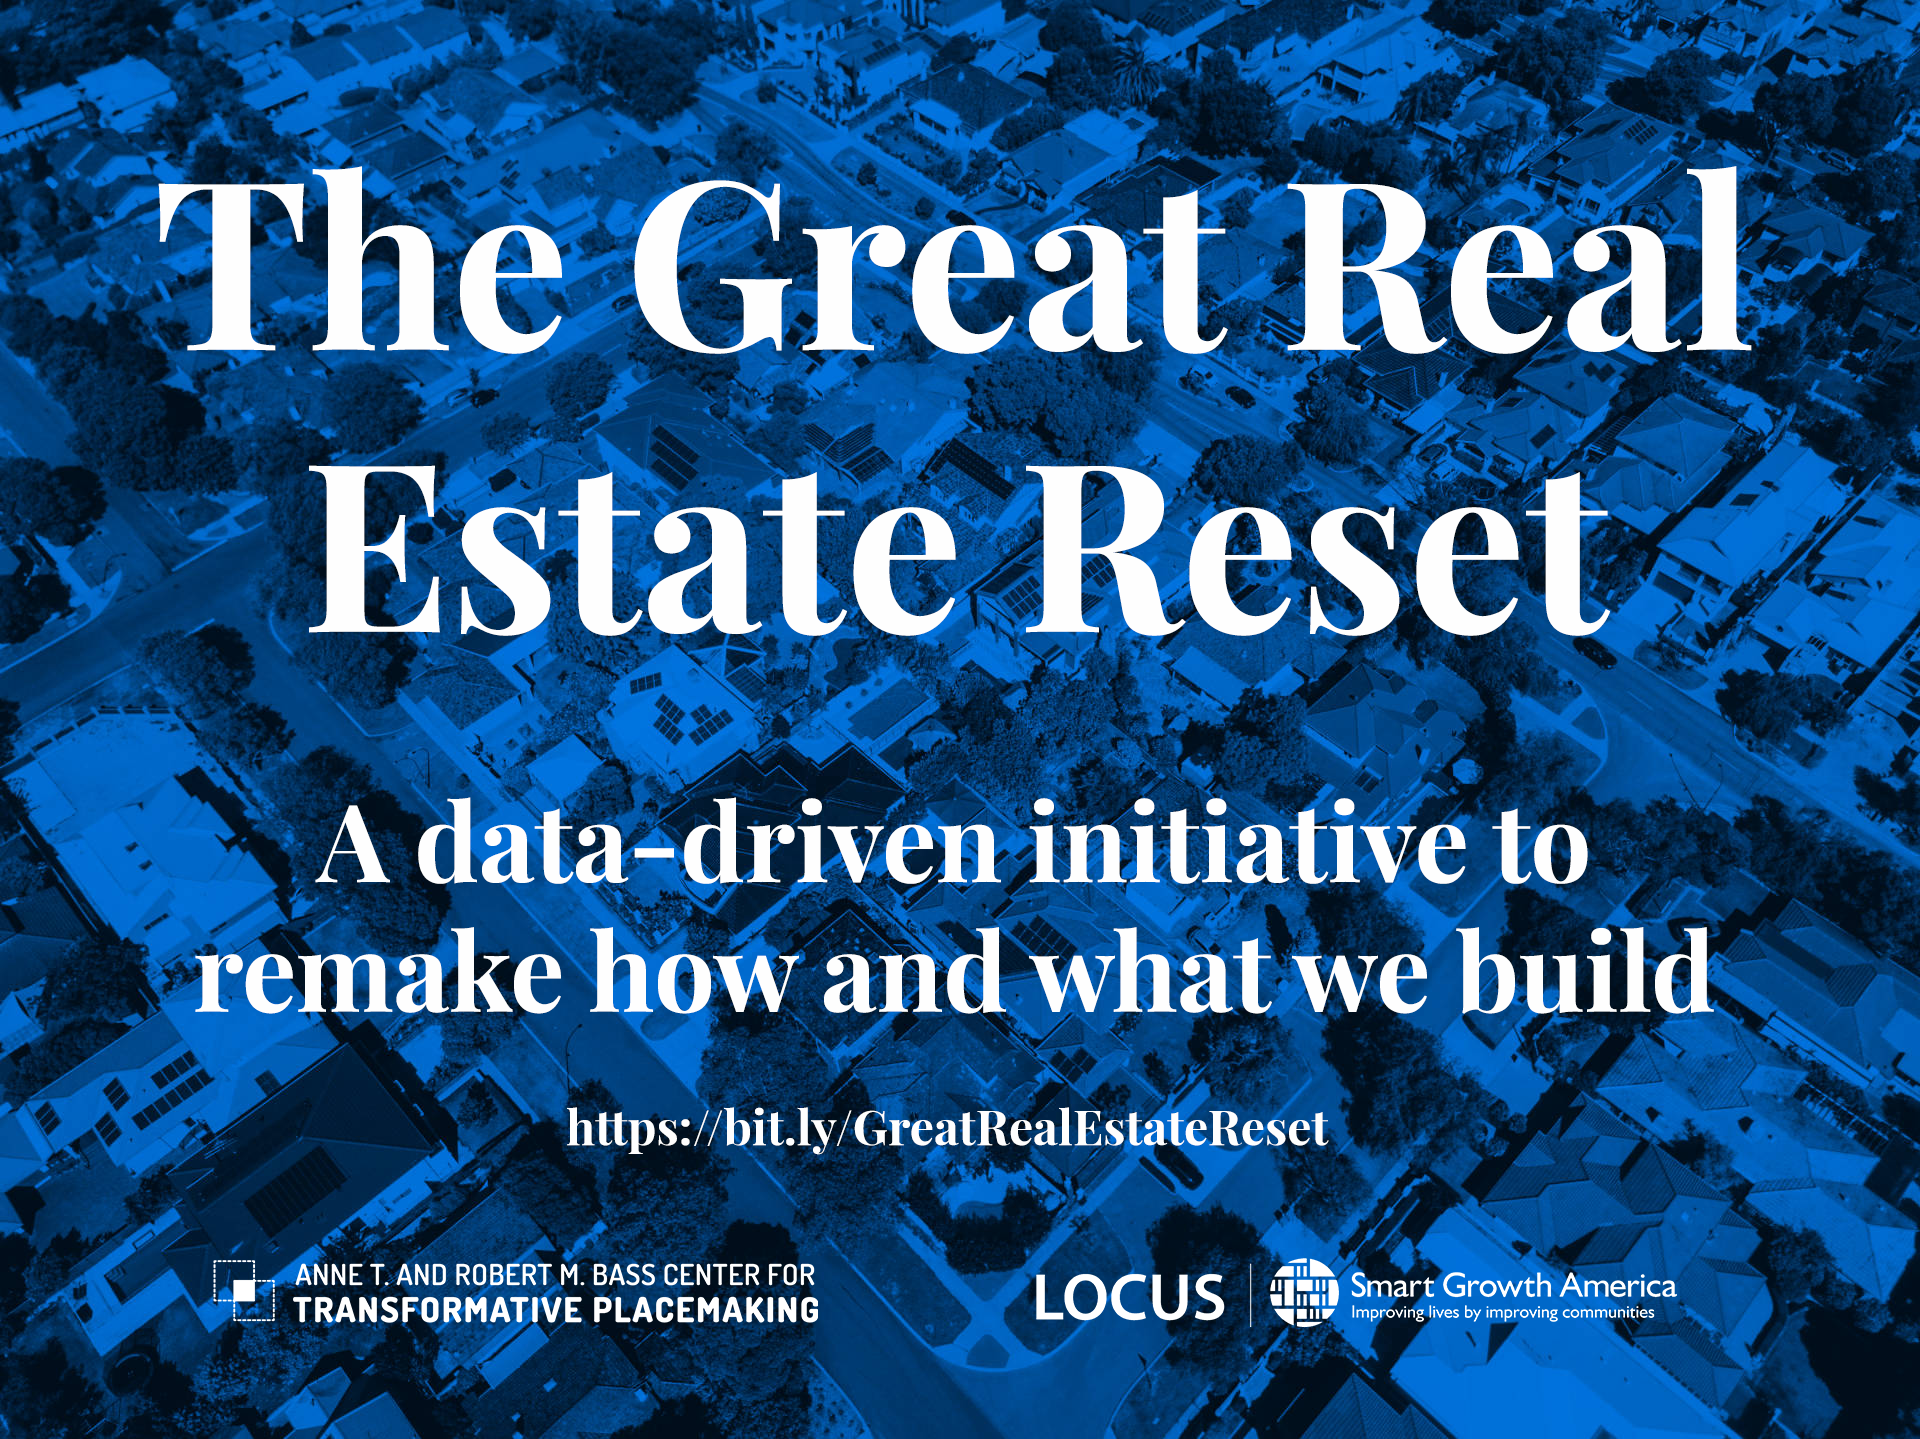 The Great Real Estate Reset